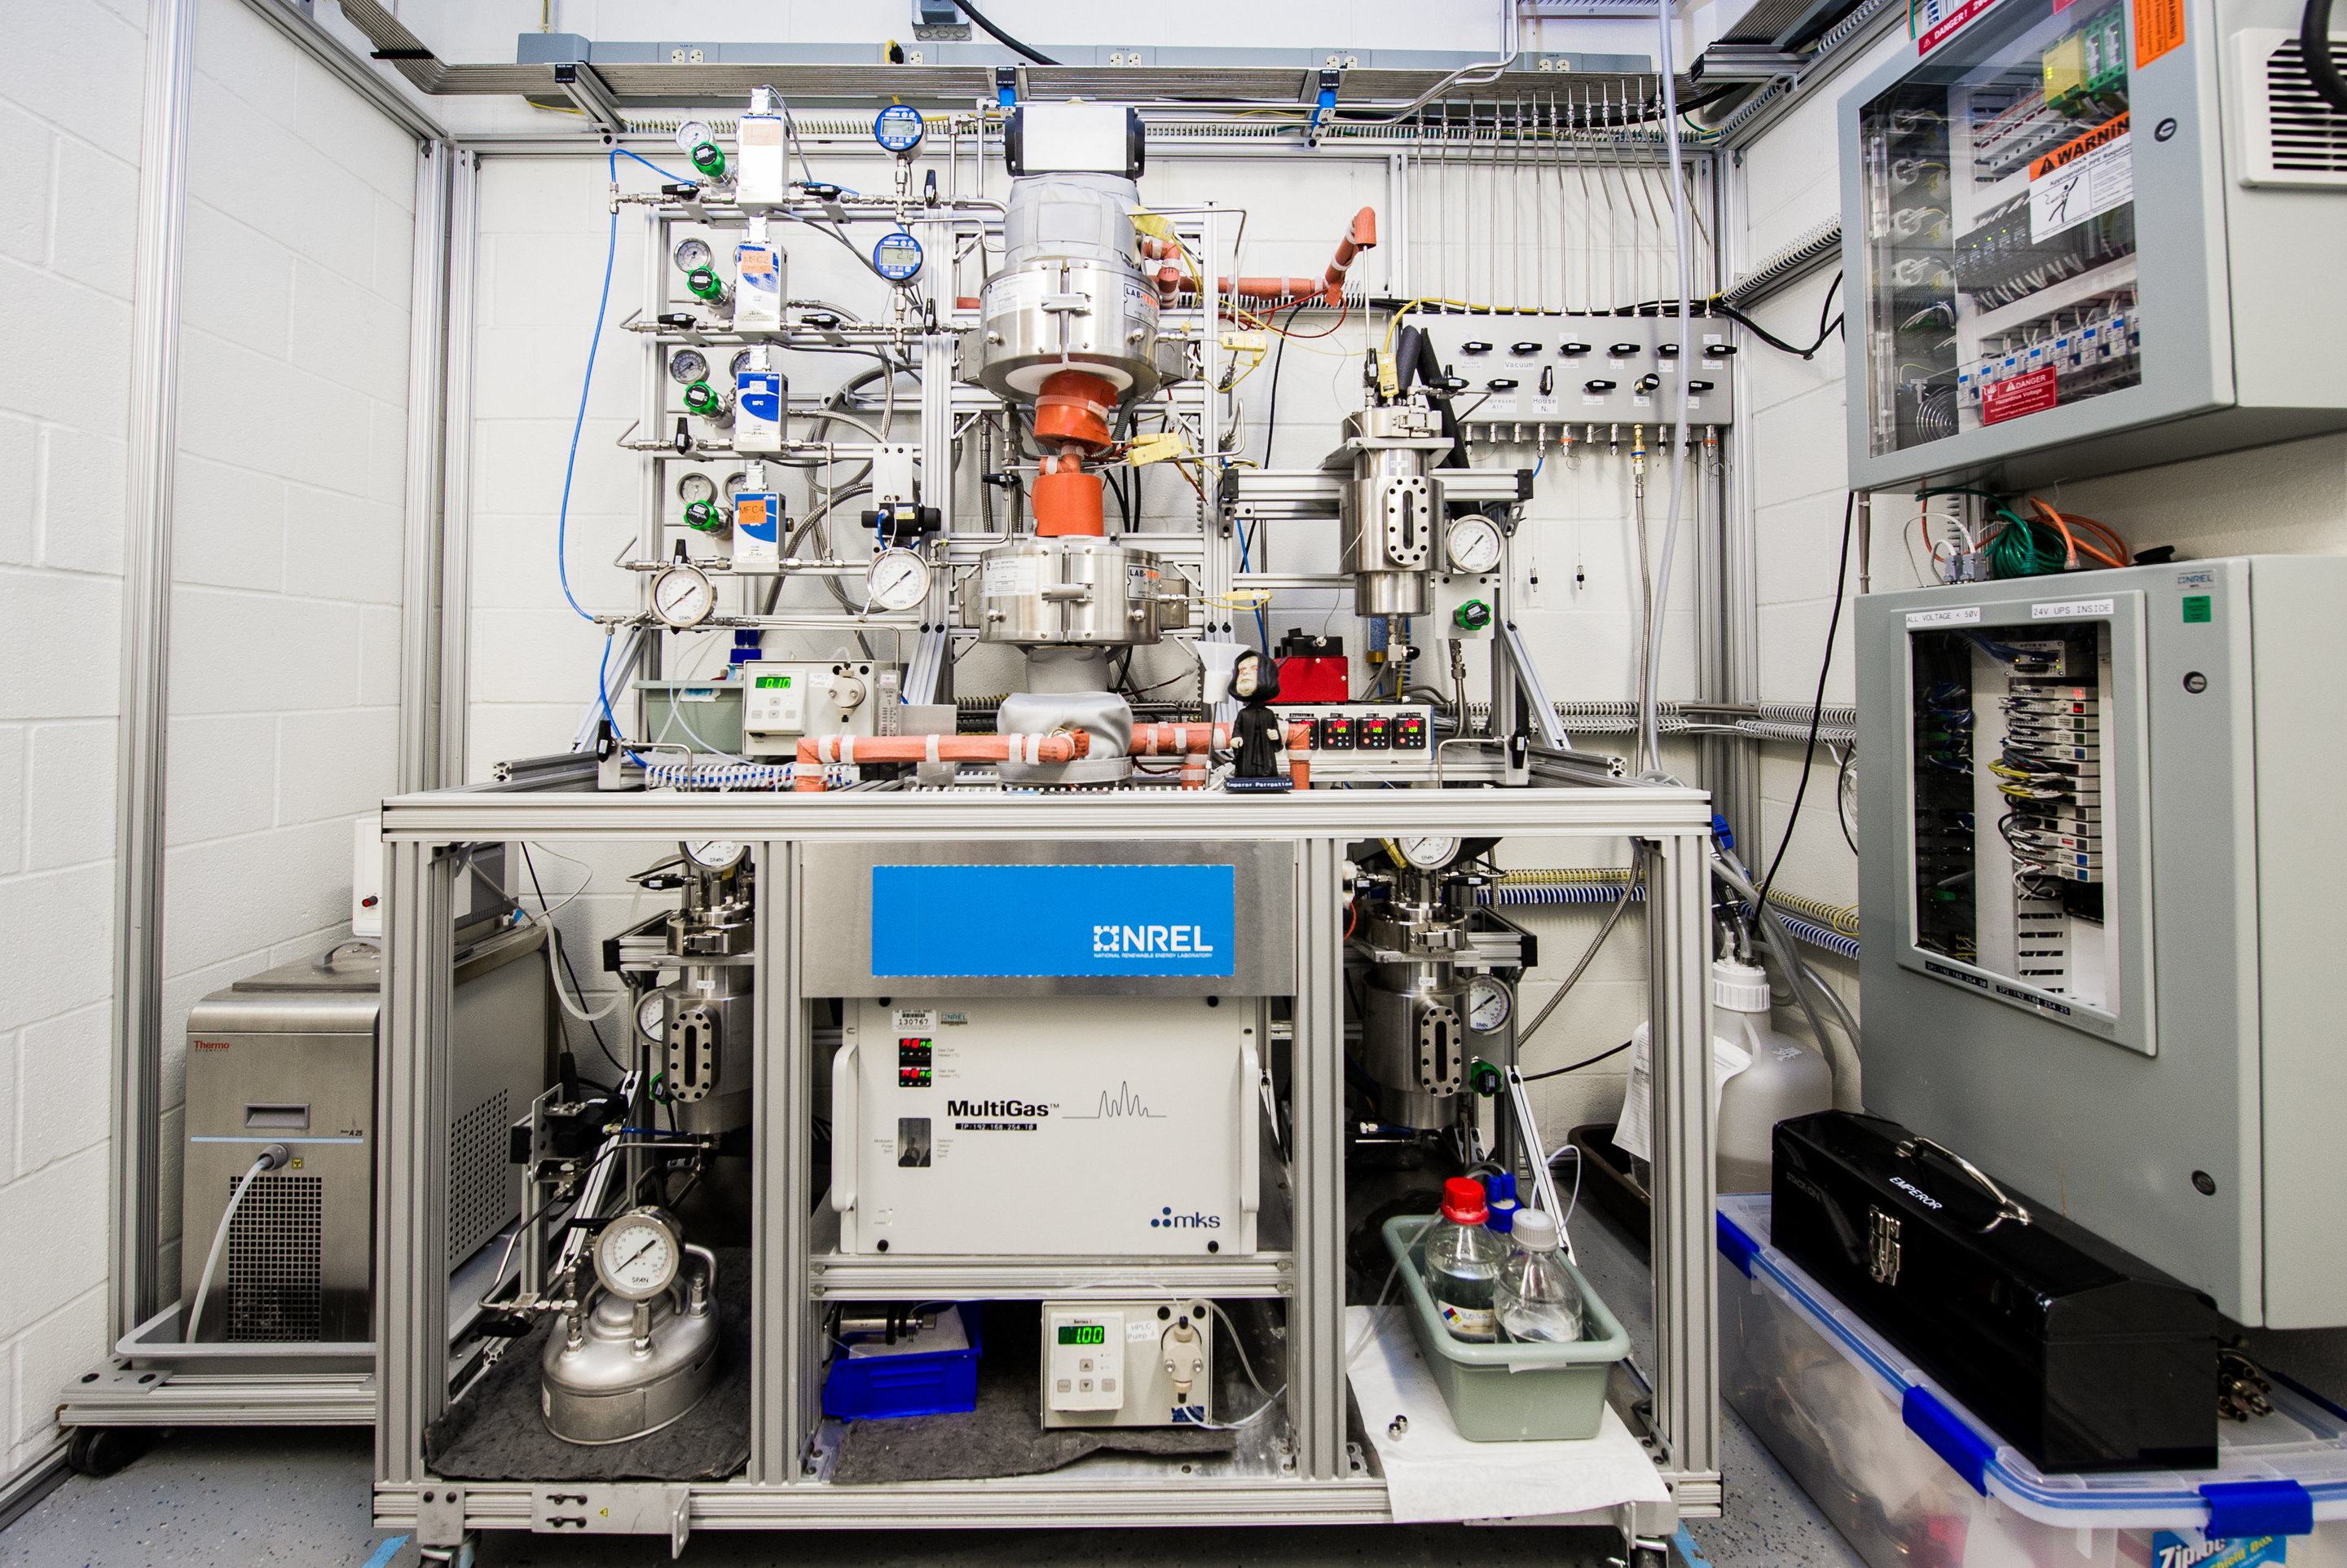 Bio Based Compound Offers A Greener Carbon Fiber Alternative Domestic Electrical Wiring Is Basically The Catalytic Reactor Shown Here For Converting Chemical Intermediates Into Acrylonitrile Work Part Of Renewable Consortium